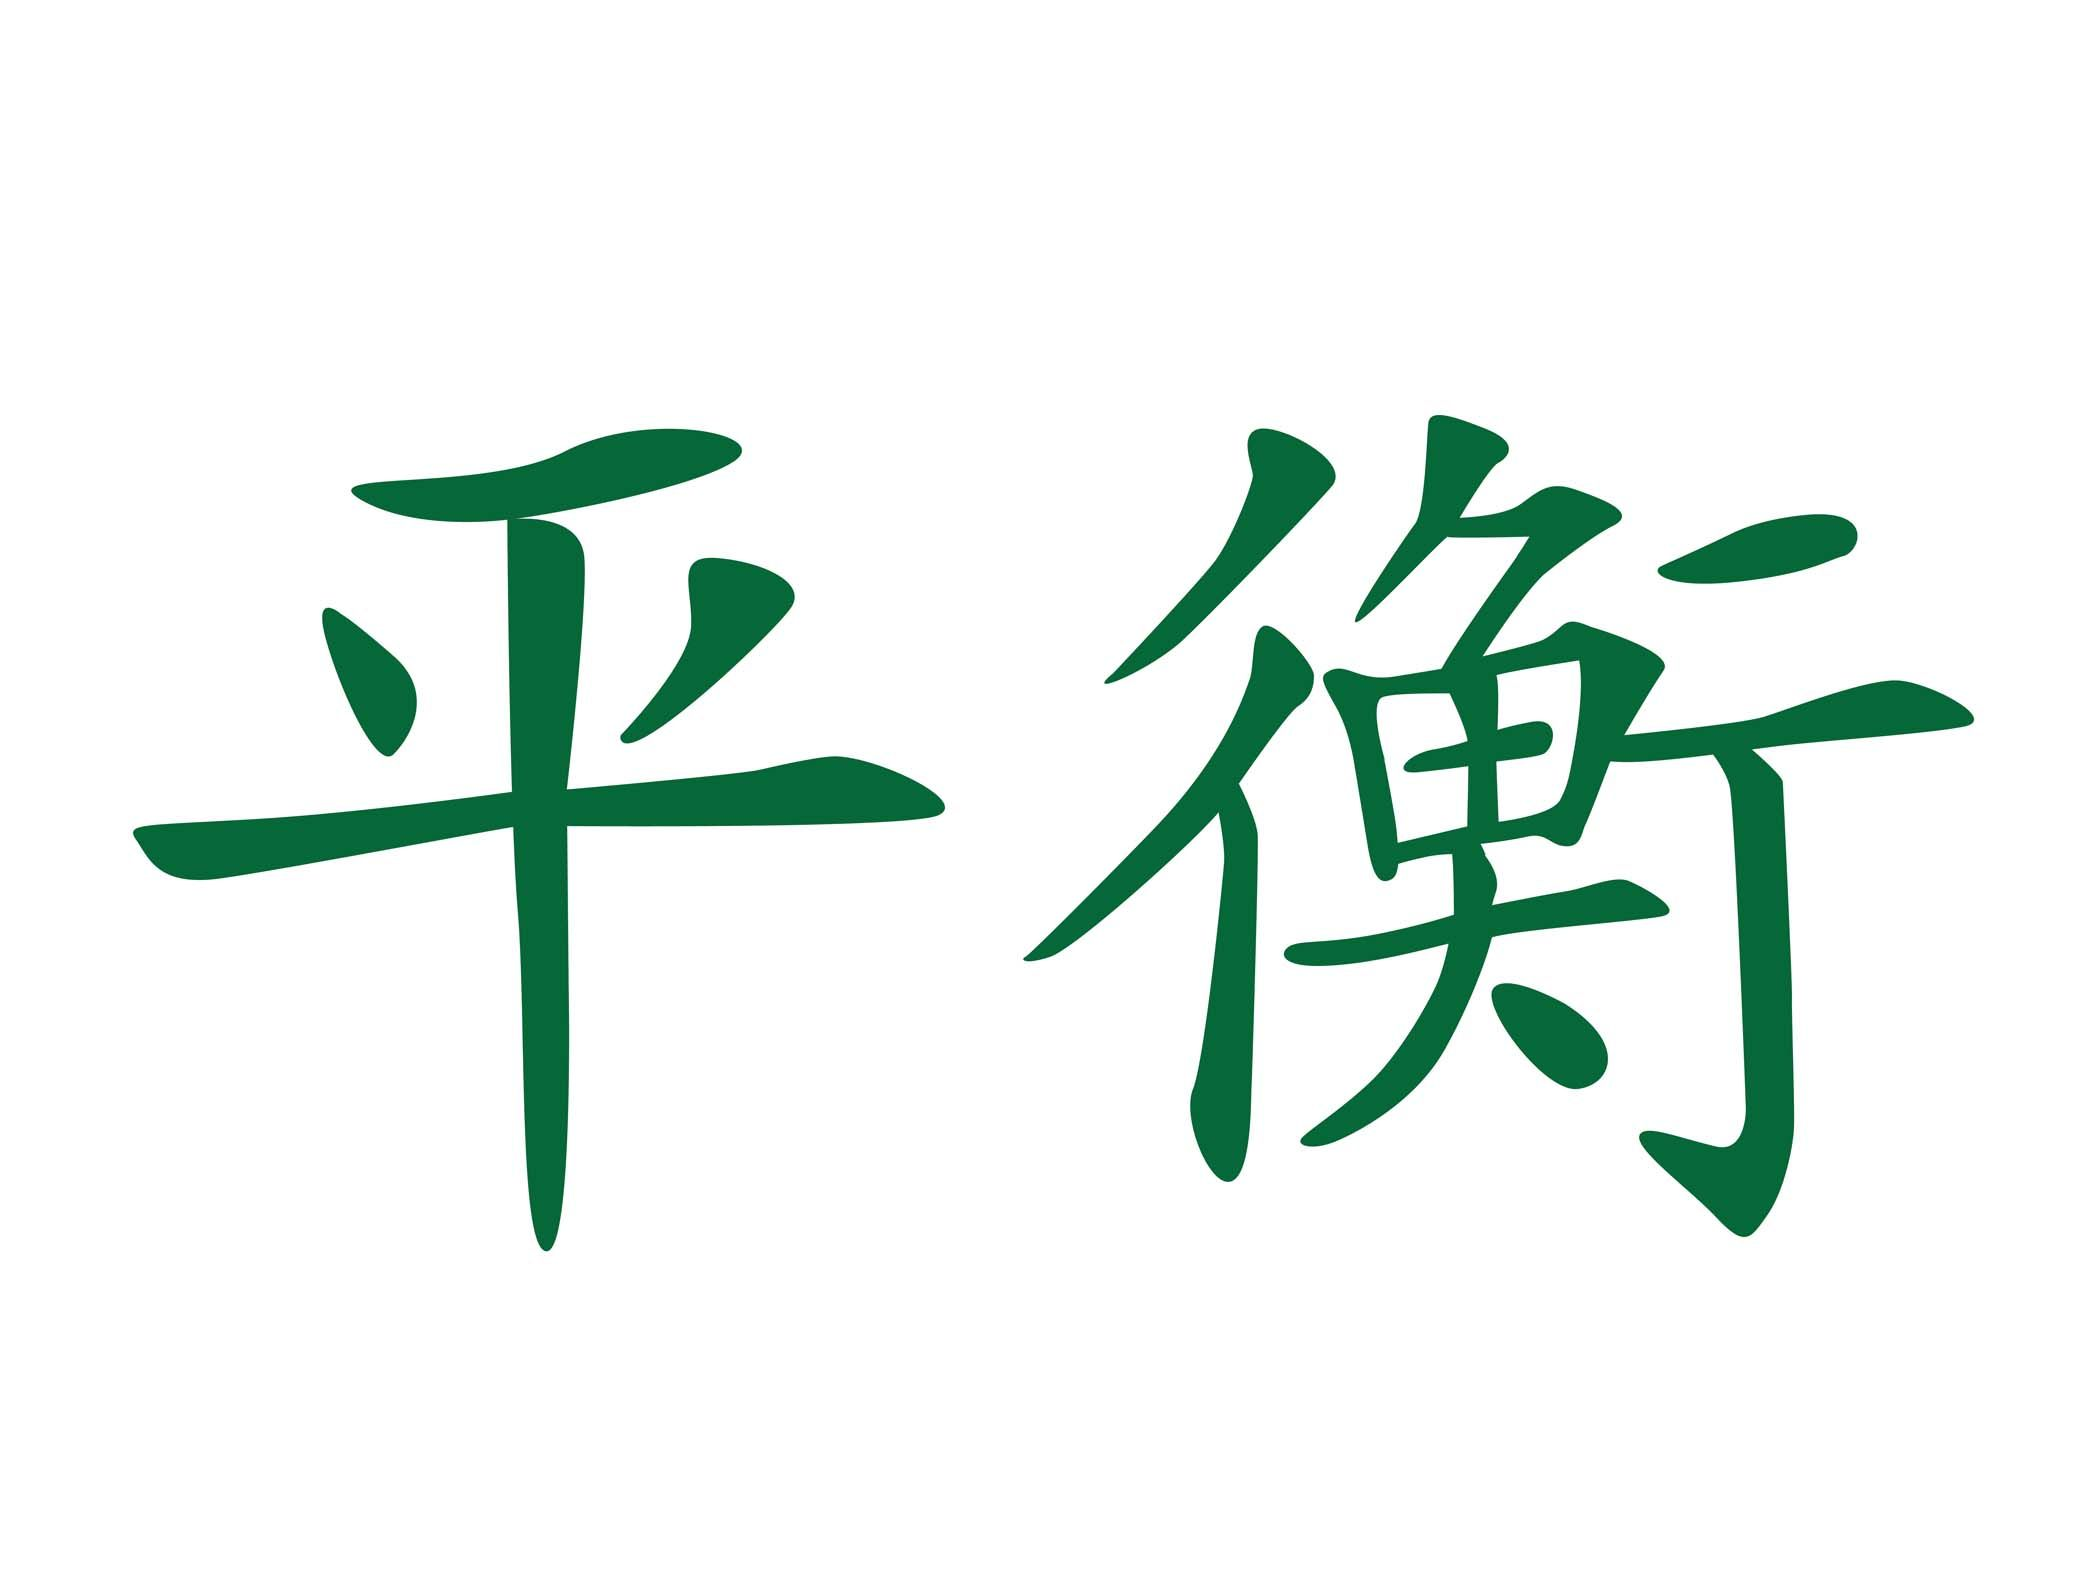 This simple symbol says balance in chinese place it in your this simple symbol says balance in chinese place it in your home to biocorpaavc Gallery